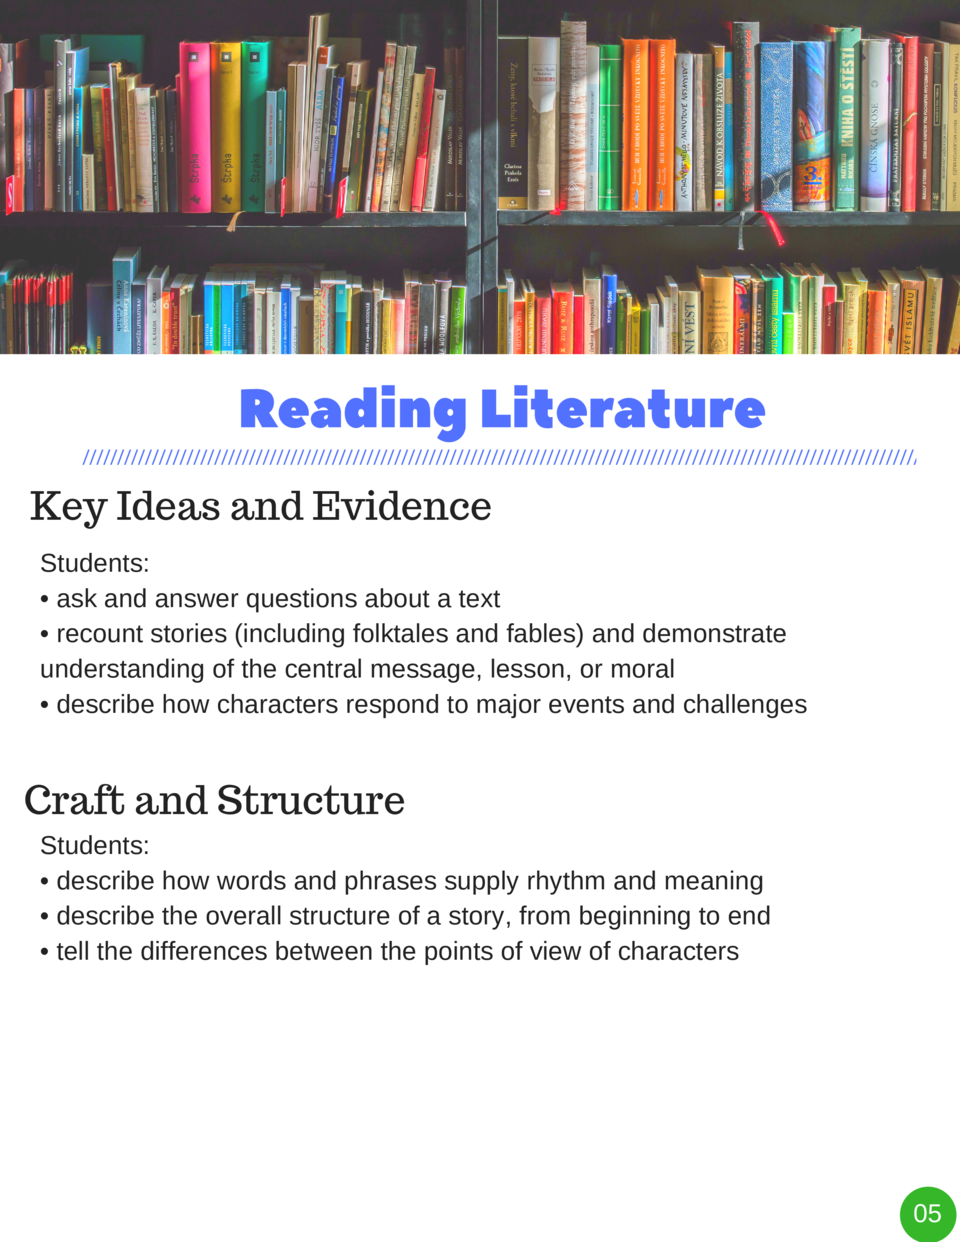 Reading   Literature Key Ideas and Evidence Students      ask and answer questions about a text     recount stories  inclu...